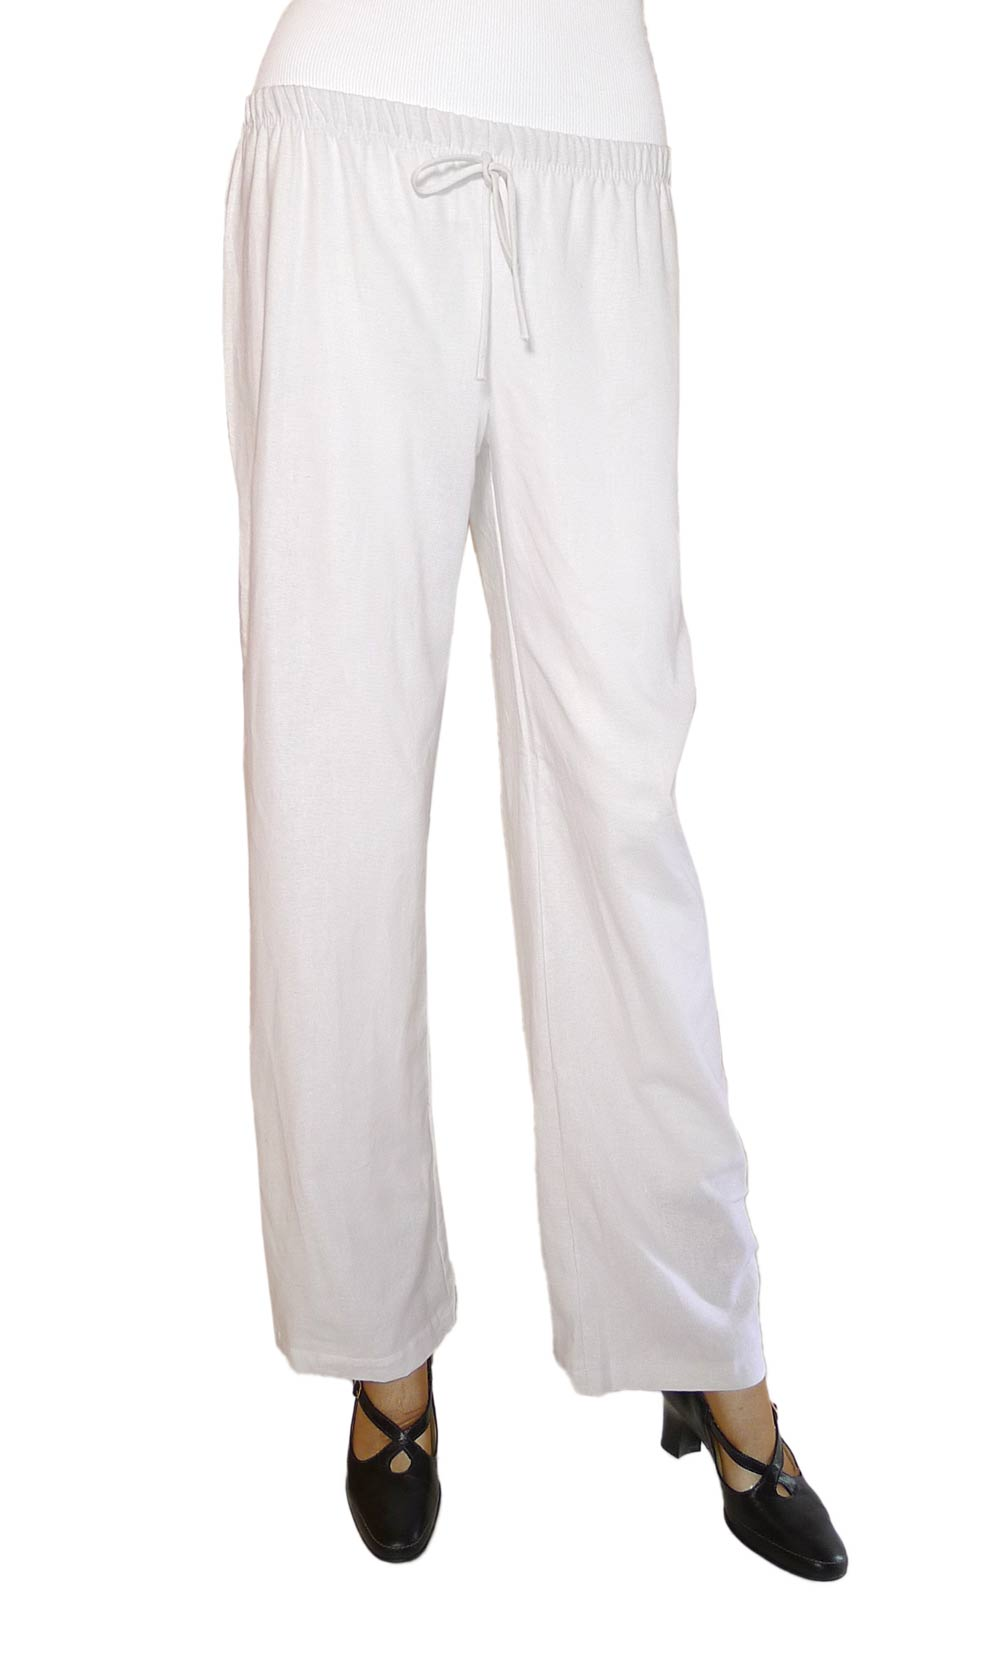 womens white evening pants photo - 2